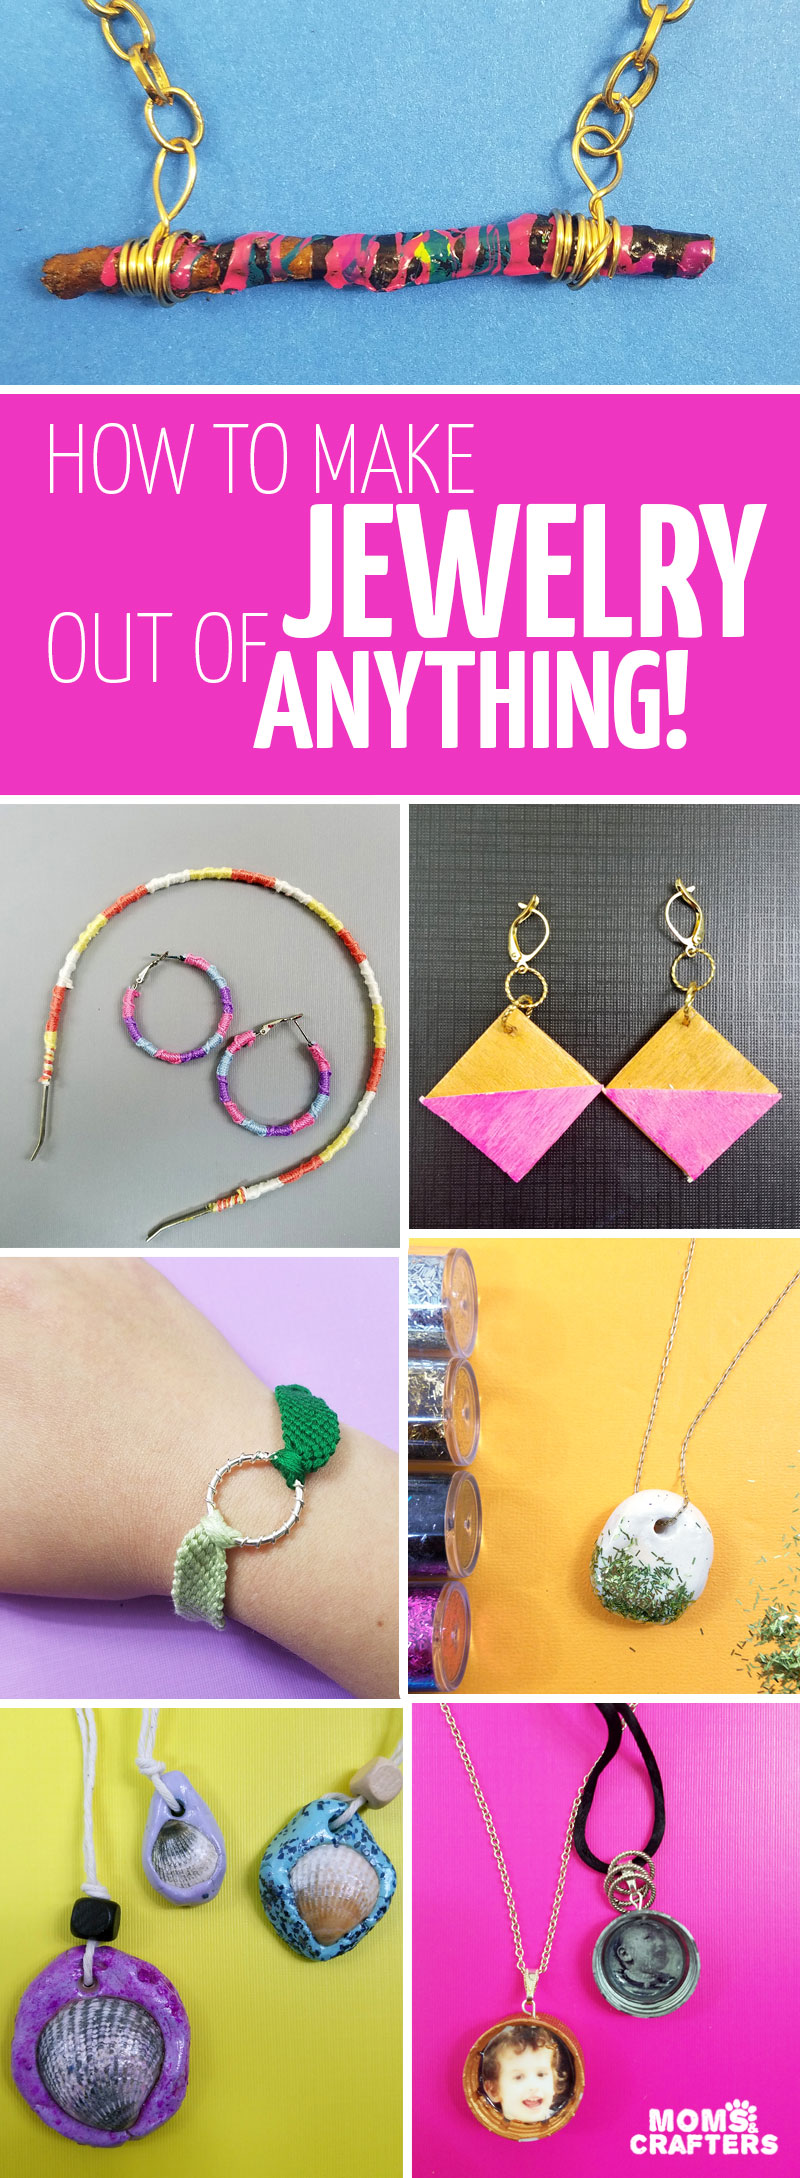 Want to learn how to make jewelry out of anything? Click to learn more about this cool jewelry making book for beginners, teens, tweens, and anyone who wants to learn! You'll also learn the basics of jewelry making, with fun recycled projects, nature proejcts, and more.